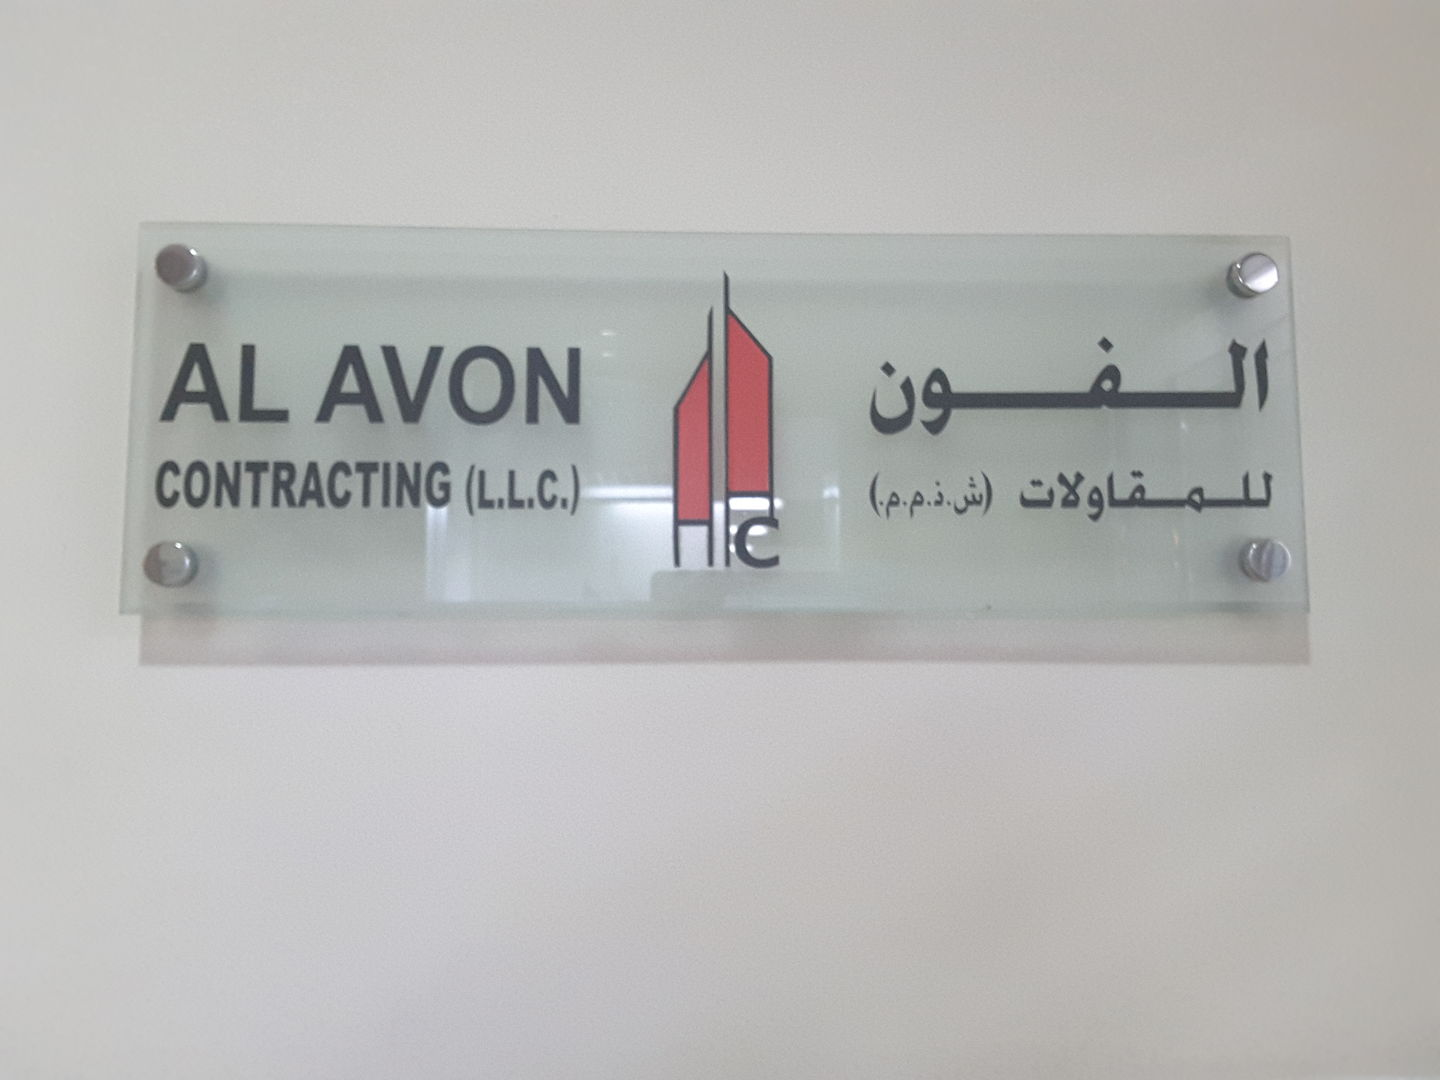 HiDubai-business-al-avon-contracting-construction-heavy-industries-construction-renovation-al-barsha-1-dubai-2